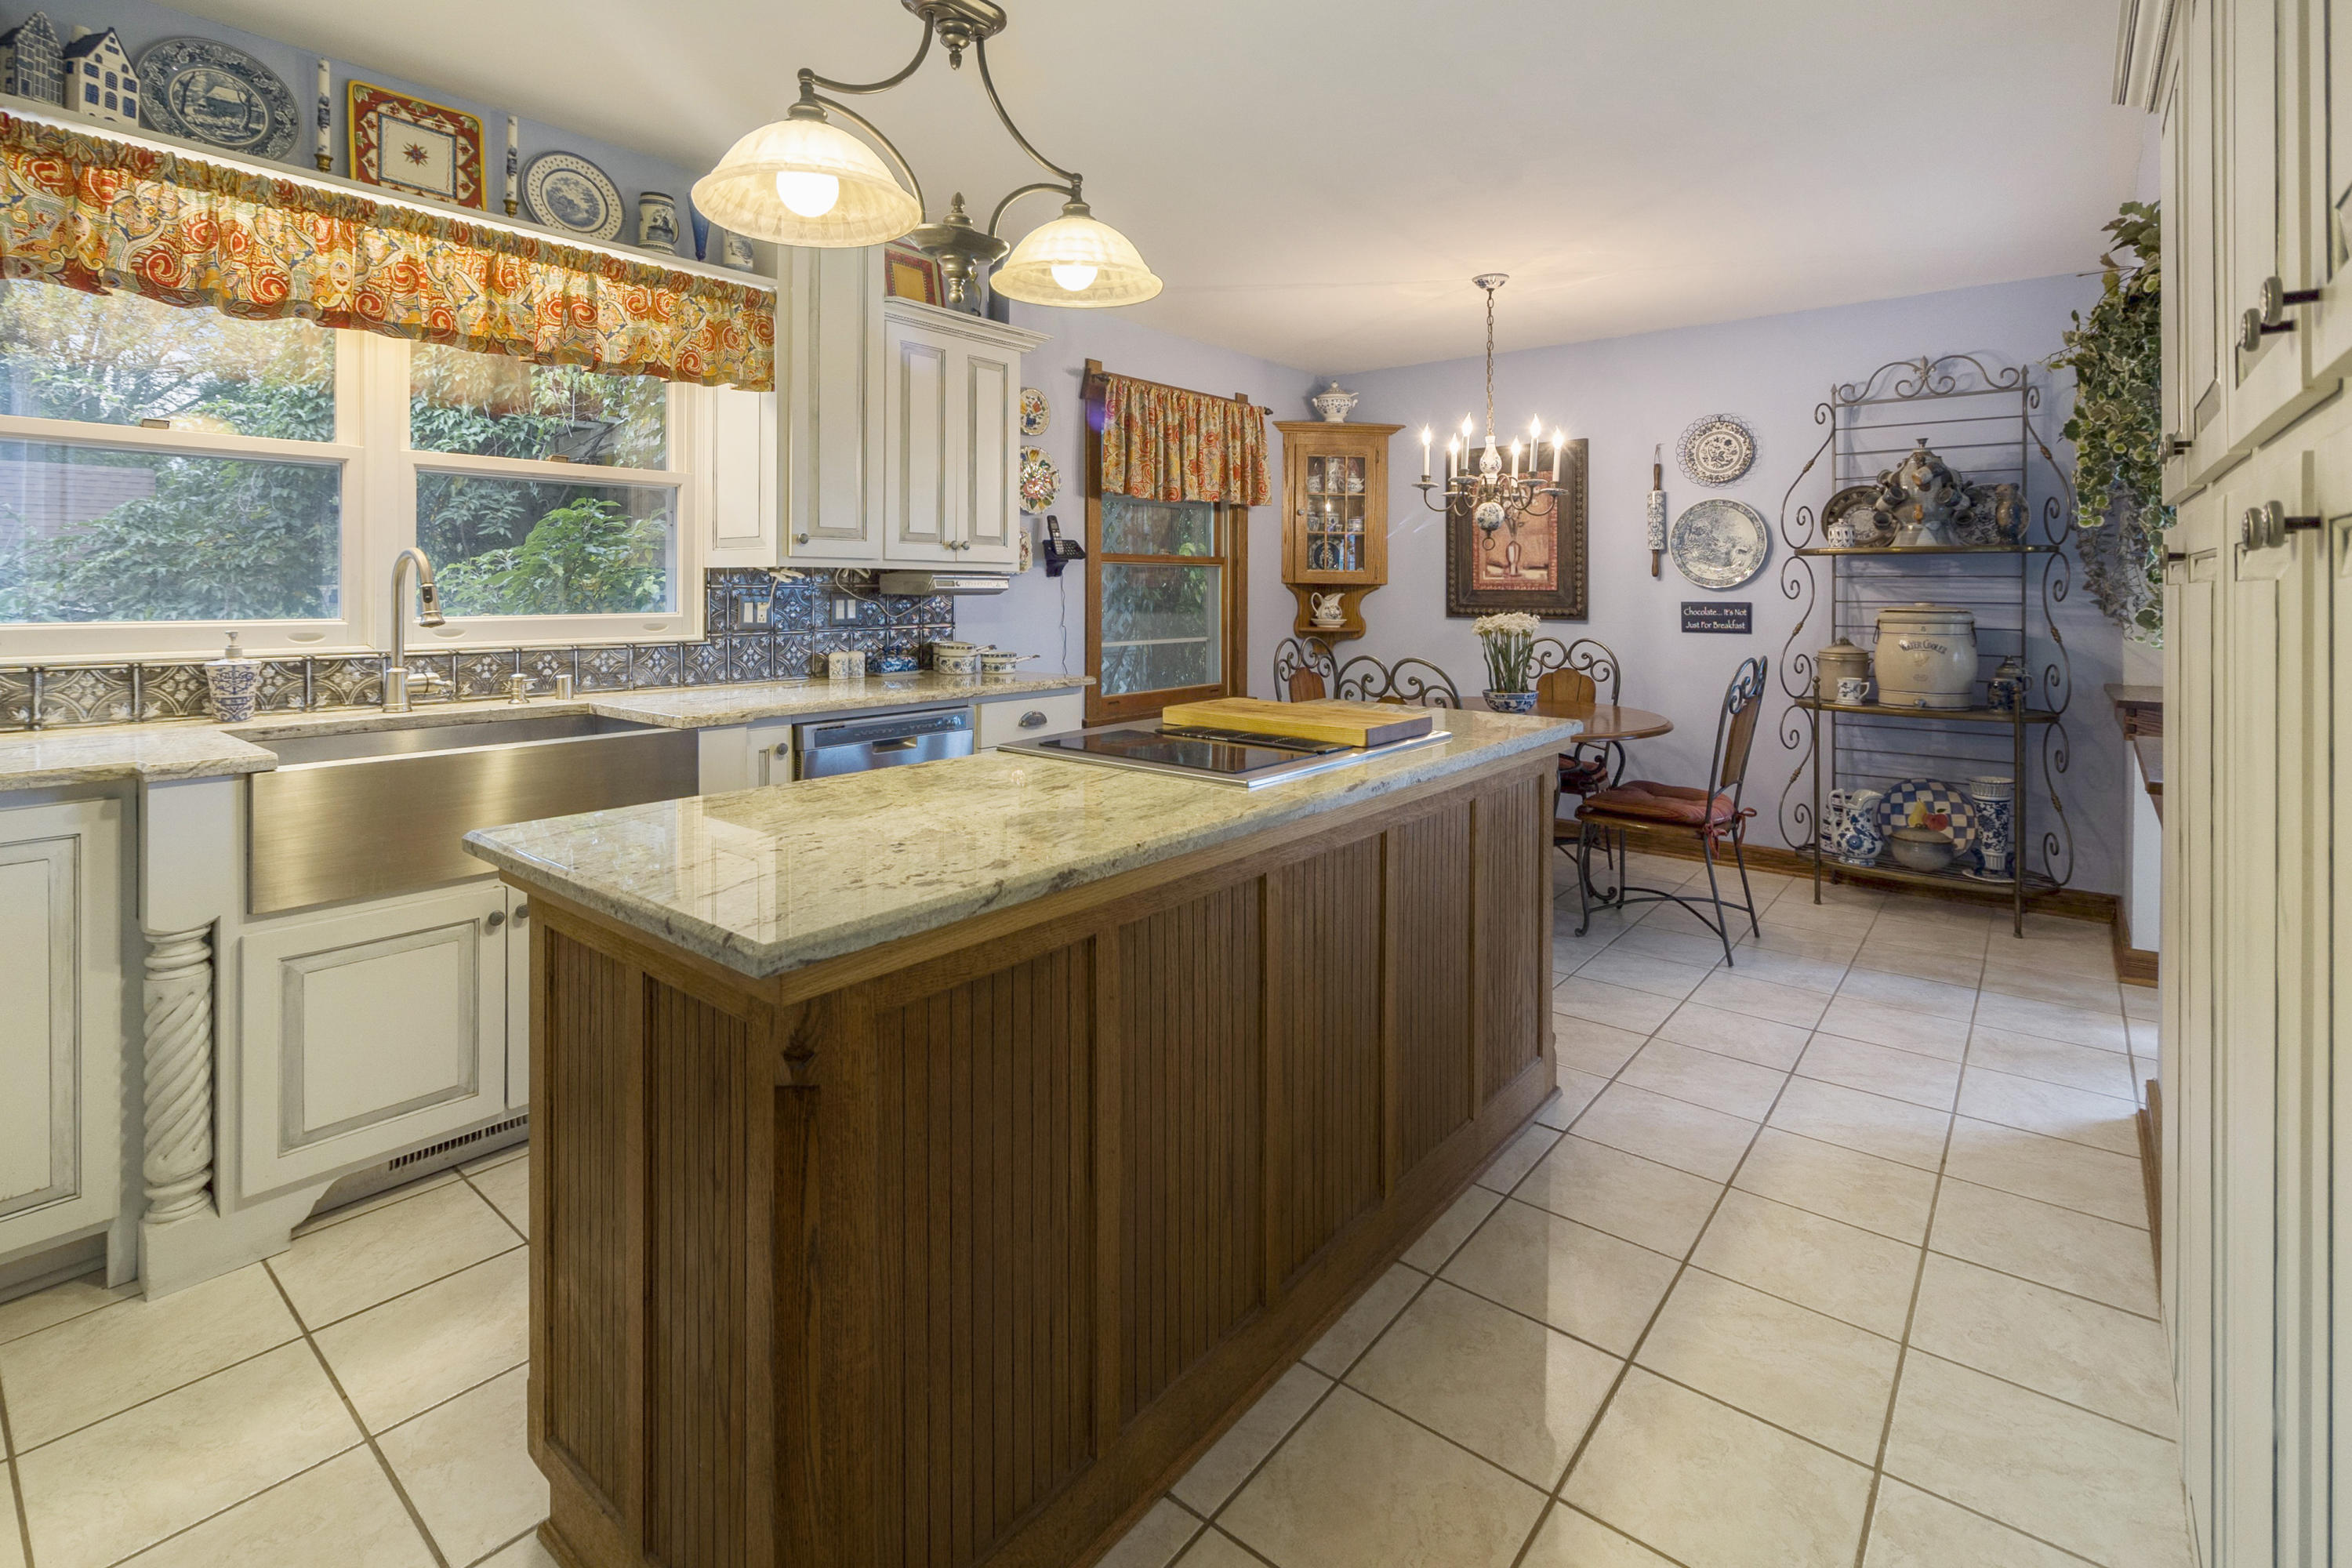 S43W27216 Country Ln, Waukesha, Wisconsin 53189, 3 Bedrooms Bedrooms, ,2 BathroomsBathrooms,Single-Family,For Sale,Country Ln,1685577